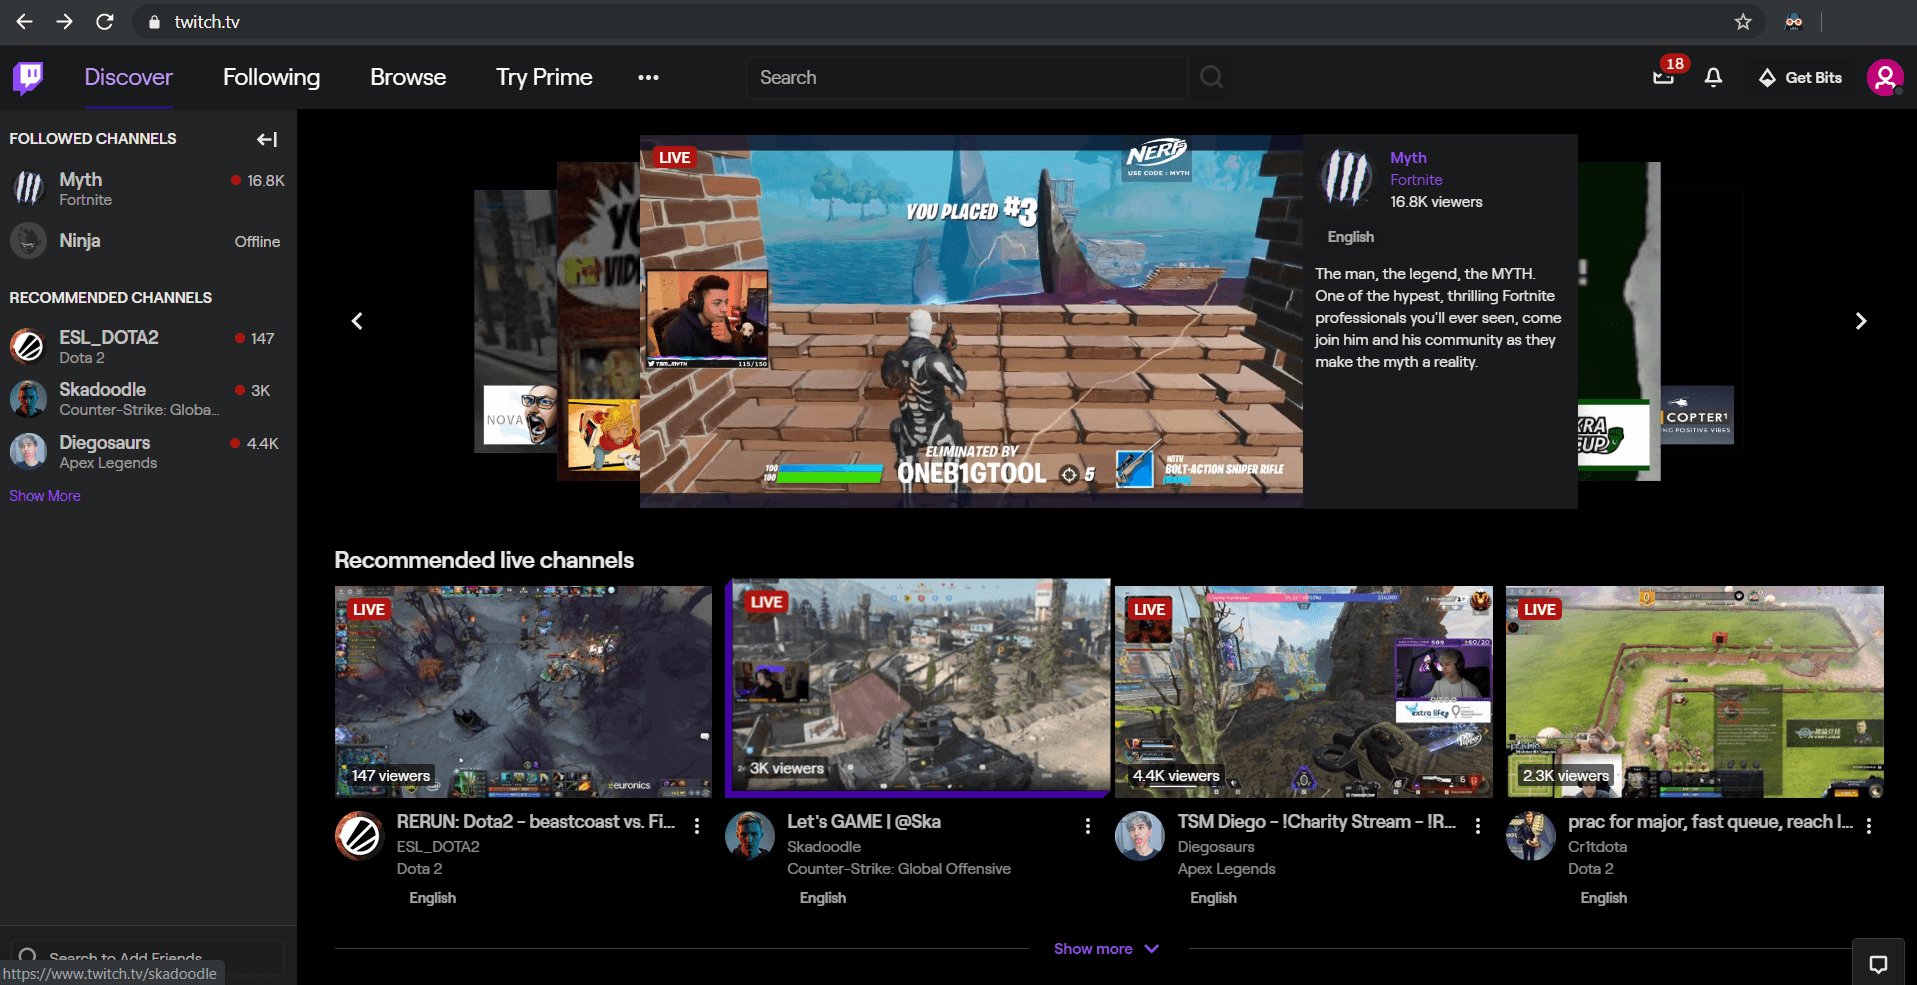 Enable Dark Mode on Twitch